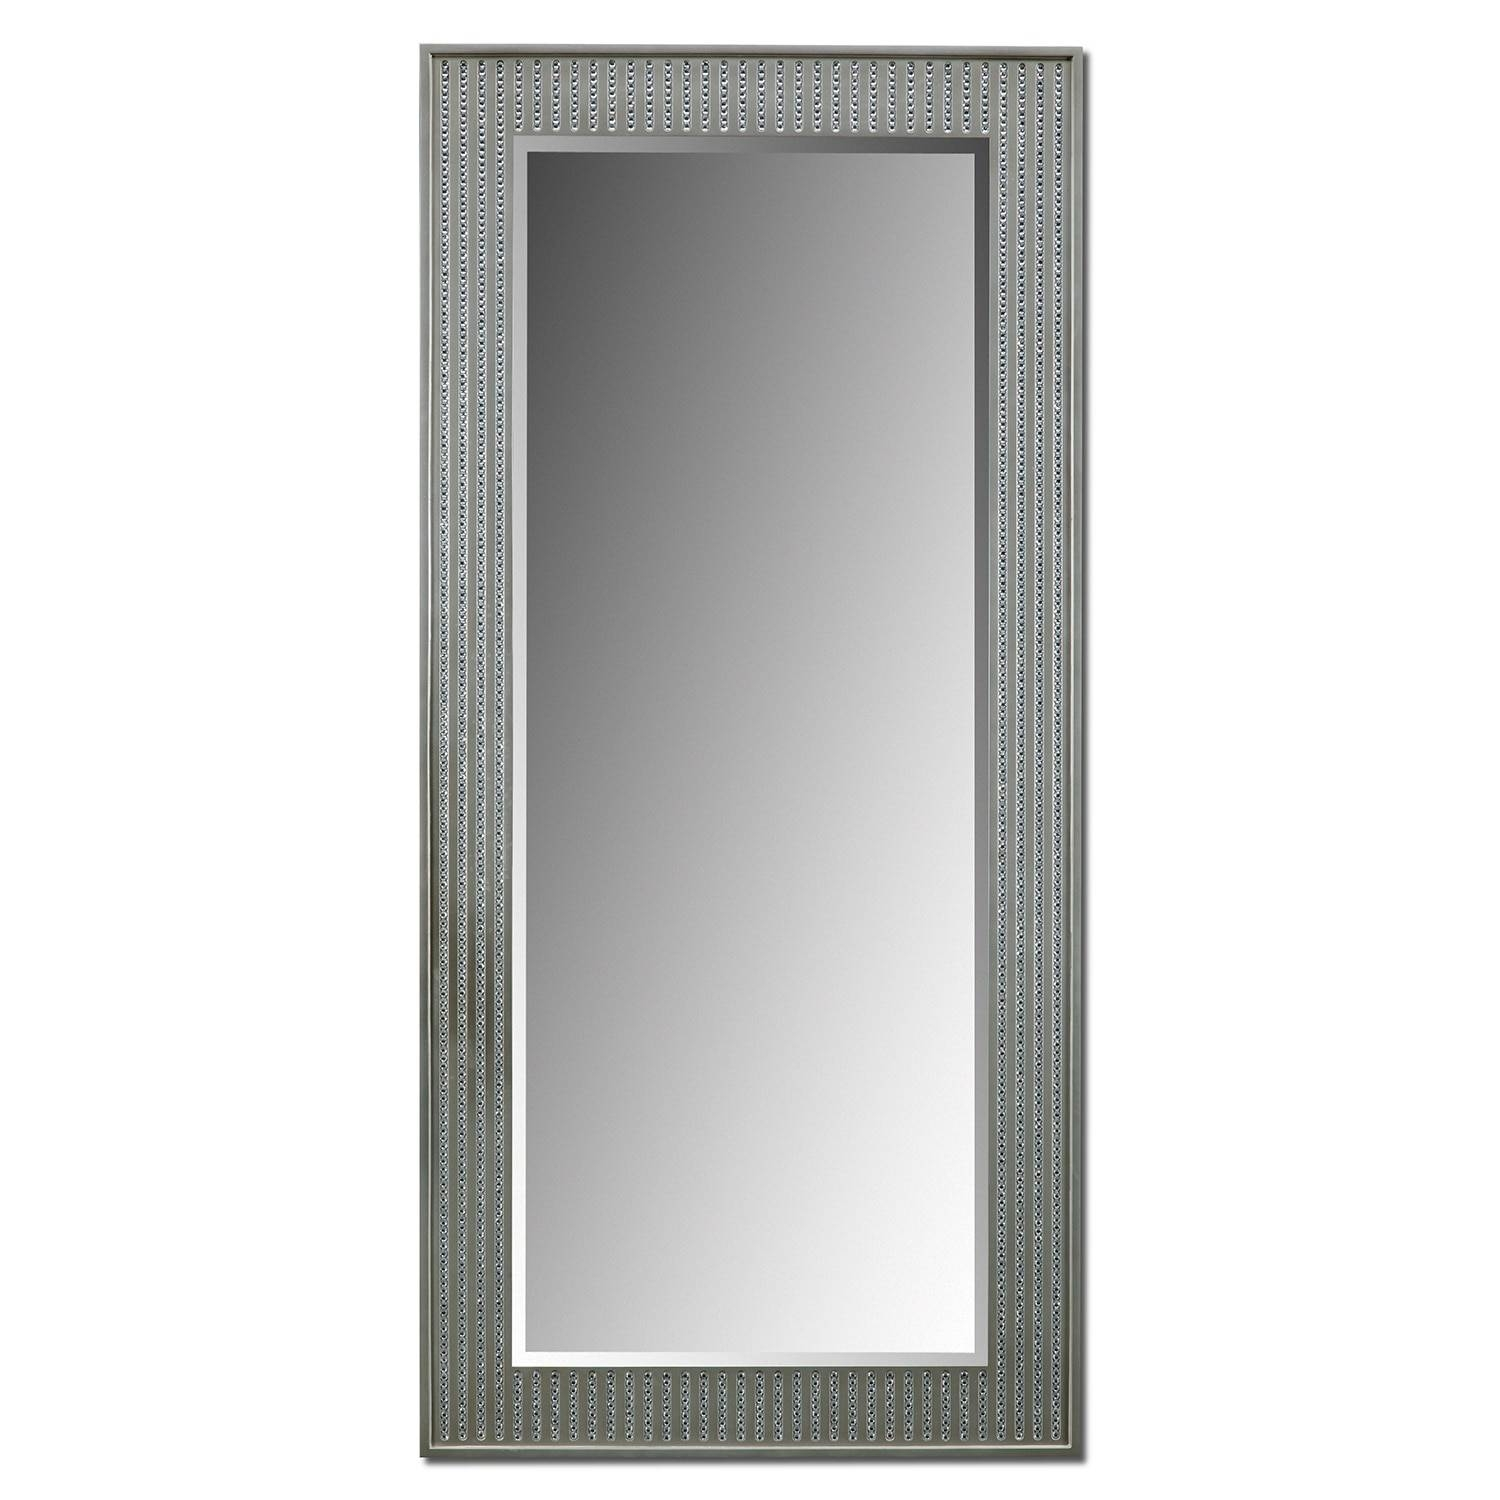 Bling Glam Floor Mirror - Silver | Value City Furniture And Mattresses with Bling Floor Mirrors (Image 4 of 15)